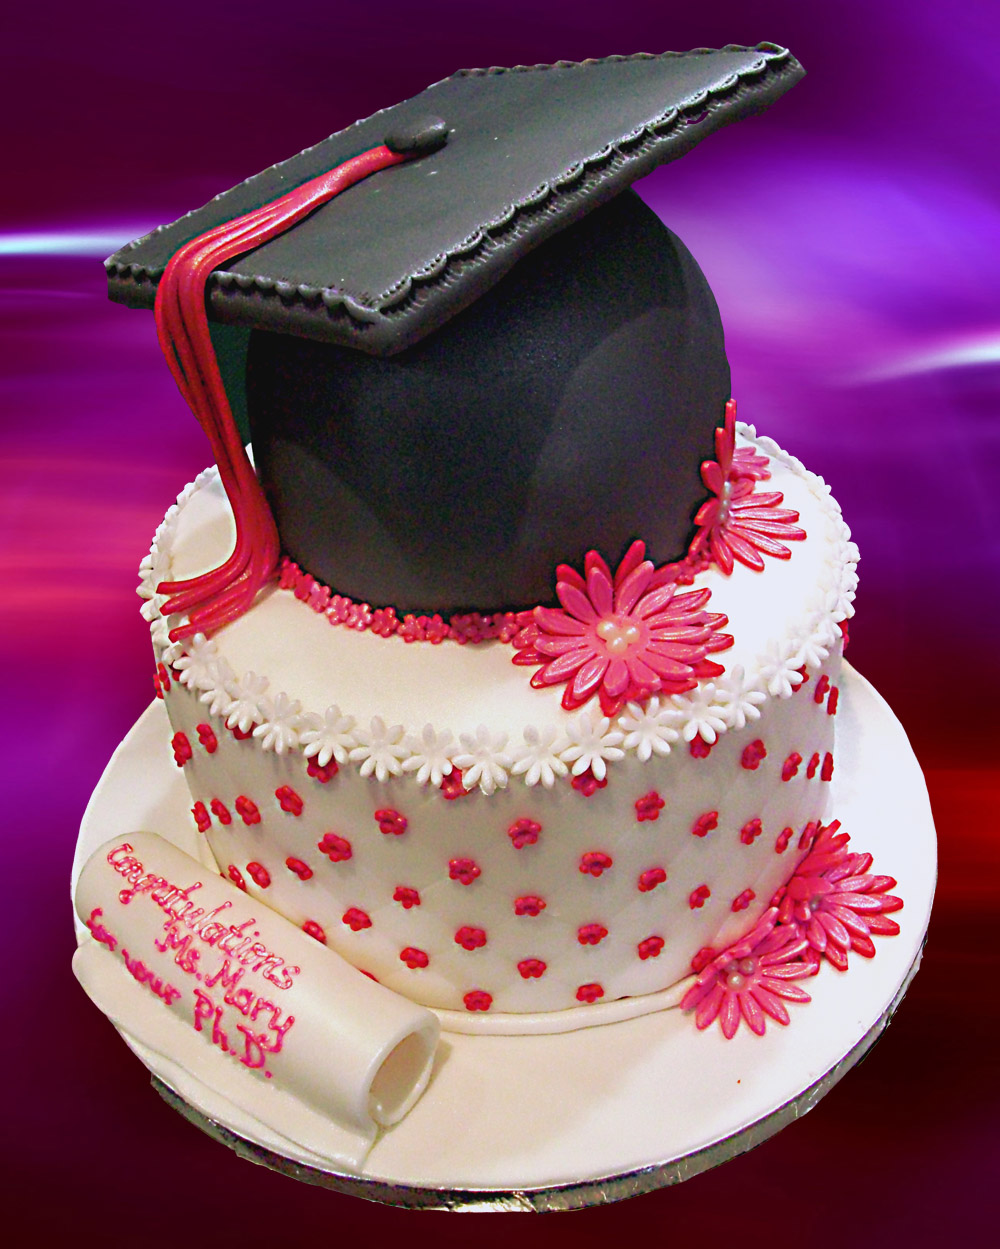 Graduation Cakes  Decoration Ideas  Little Birthday Cakes. Impressive Writing A Formal Cover Letter. Rental Agreement Template Free. University Of Akron Graduation. Now Hiring Sign Ideas. Sample Resume For Fresh Graduate Without Work Experience. Truck Wrap Design Template. Pages Cover Letter Template. Create Flyer Online Free